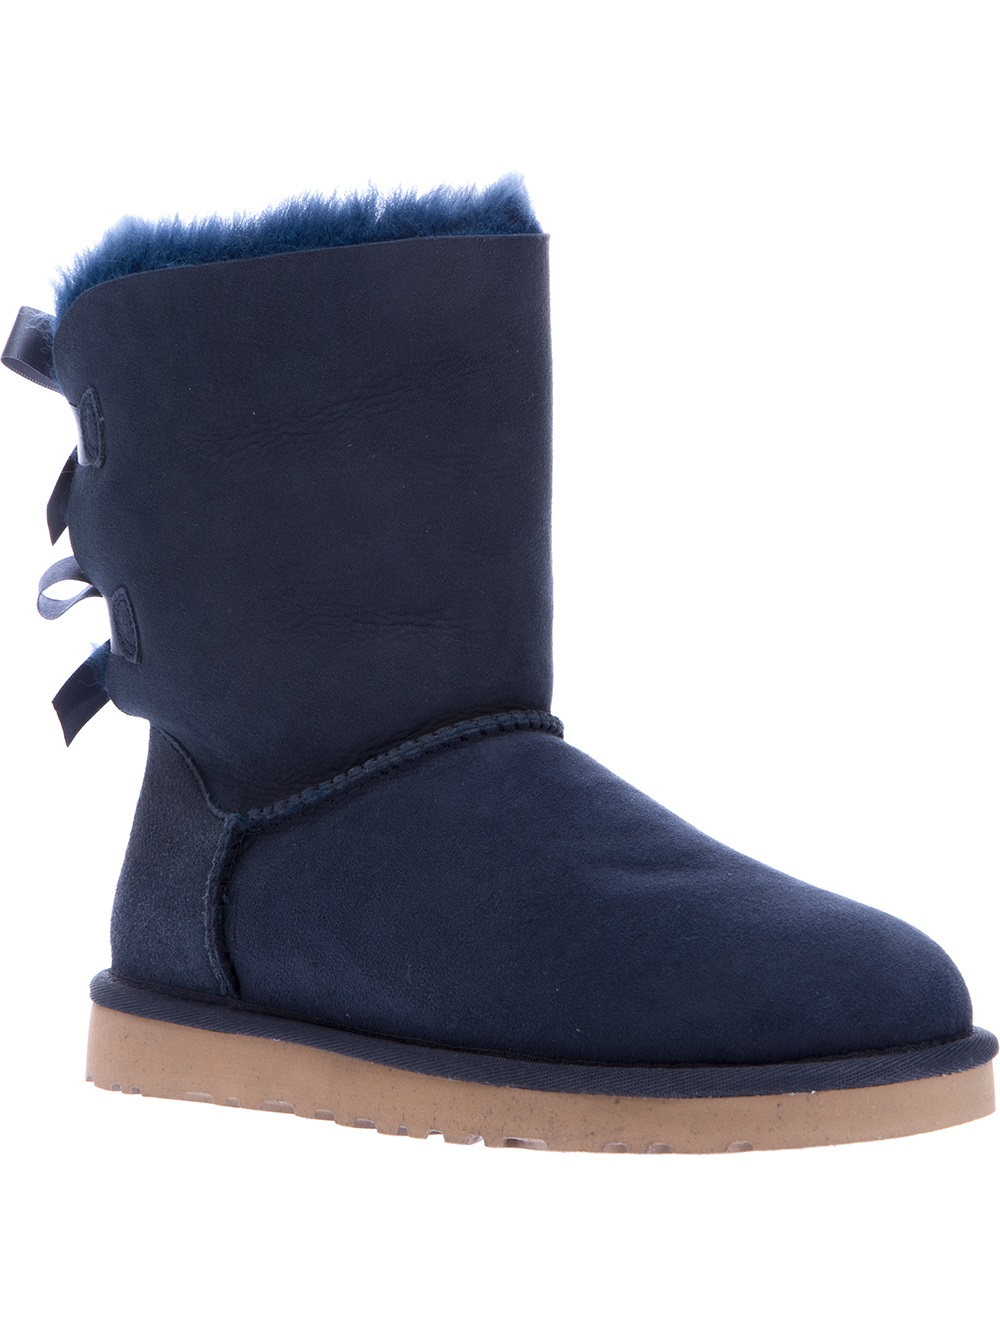 sale ugg bailey bow